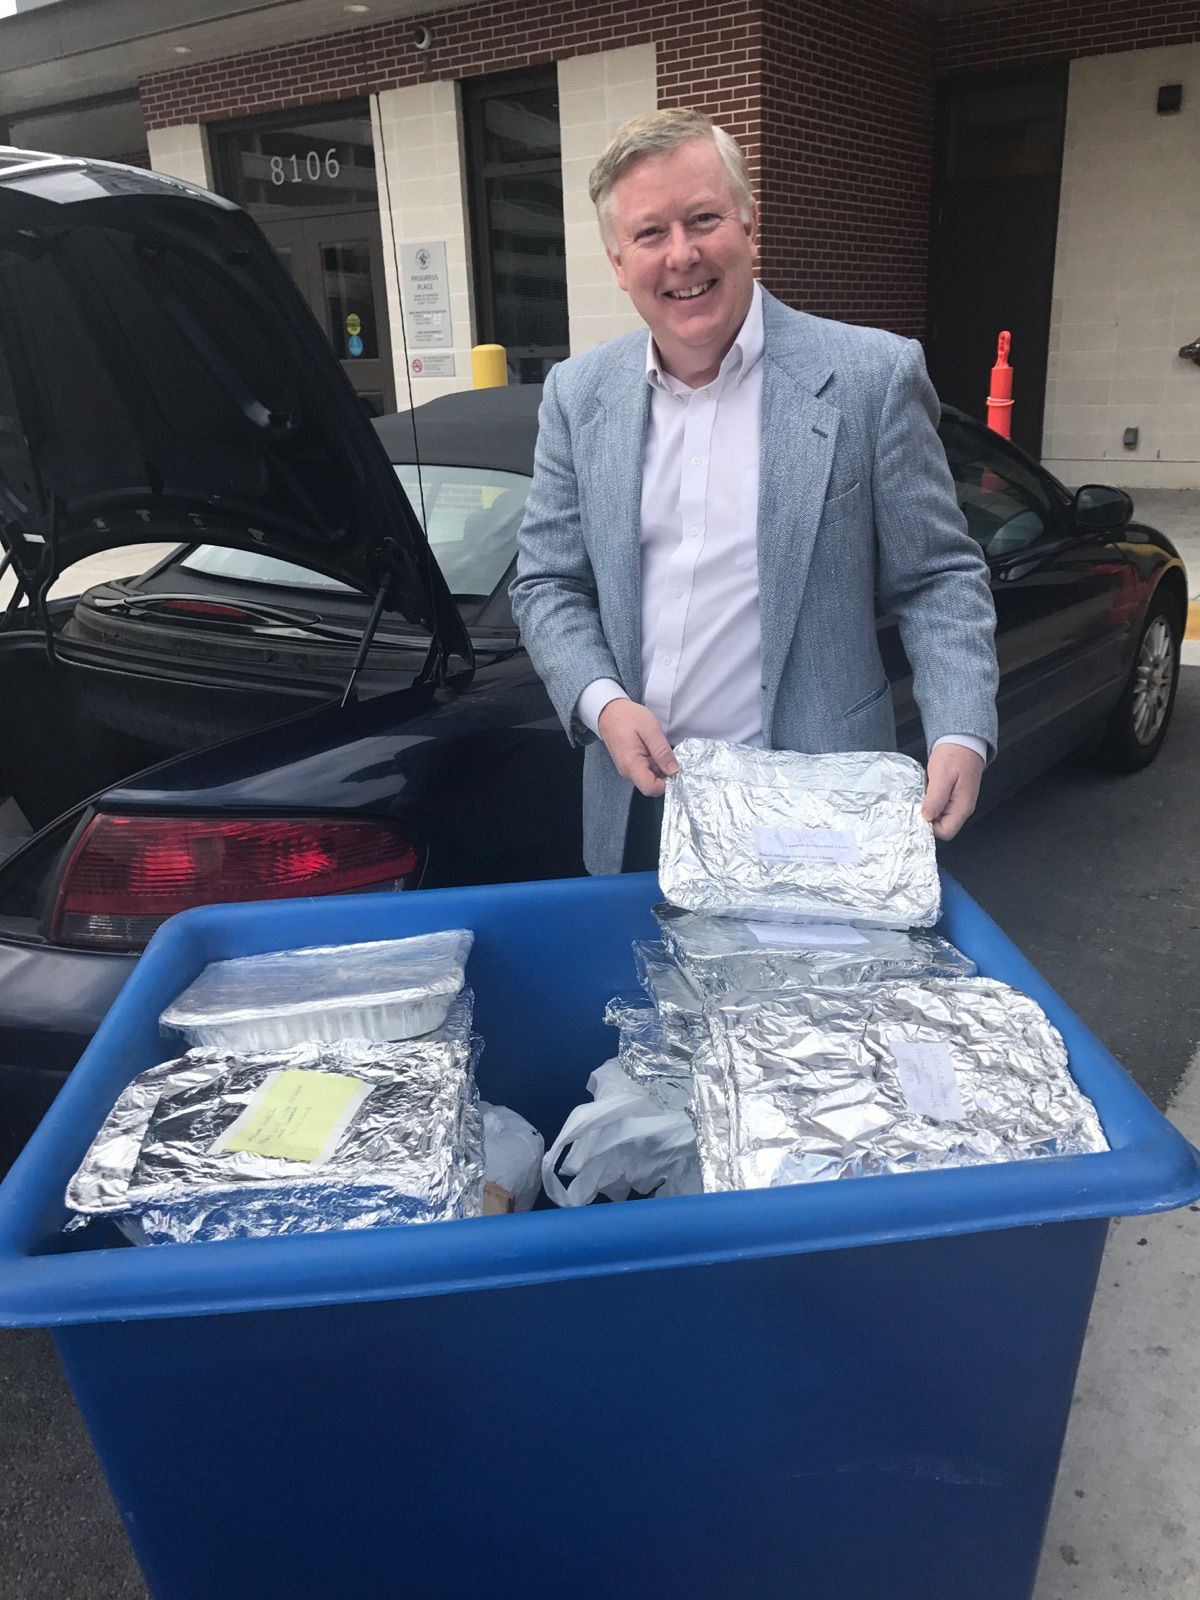 Casserole donations to Shepherd's Table in March 2018